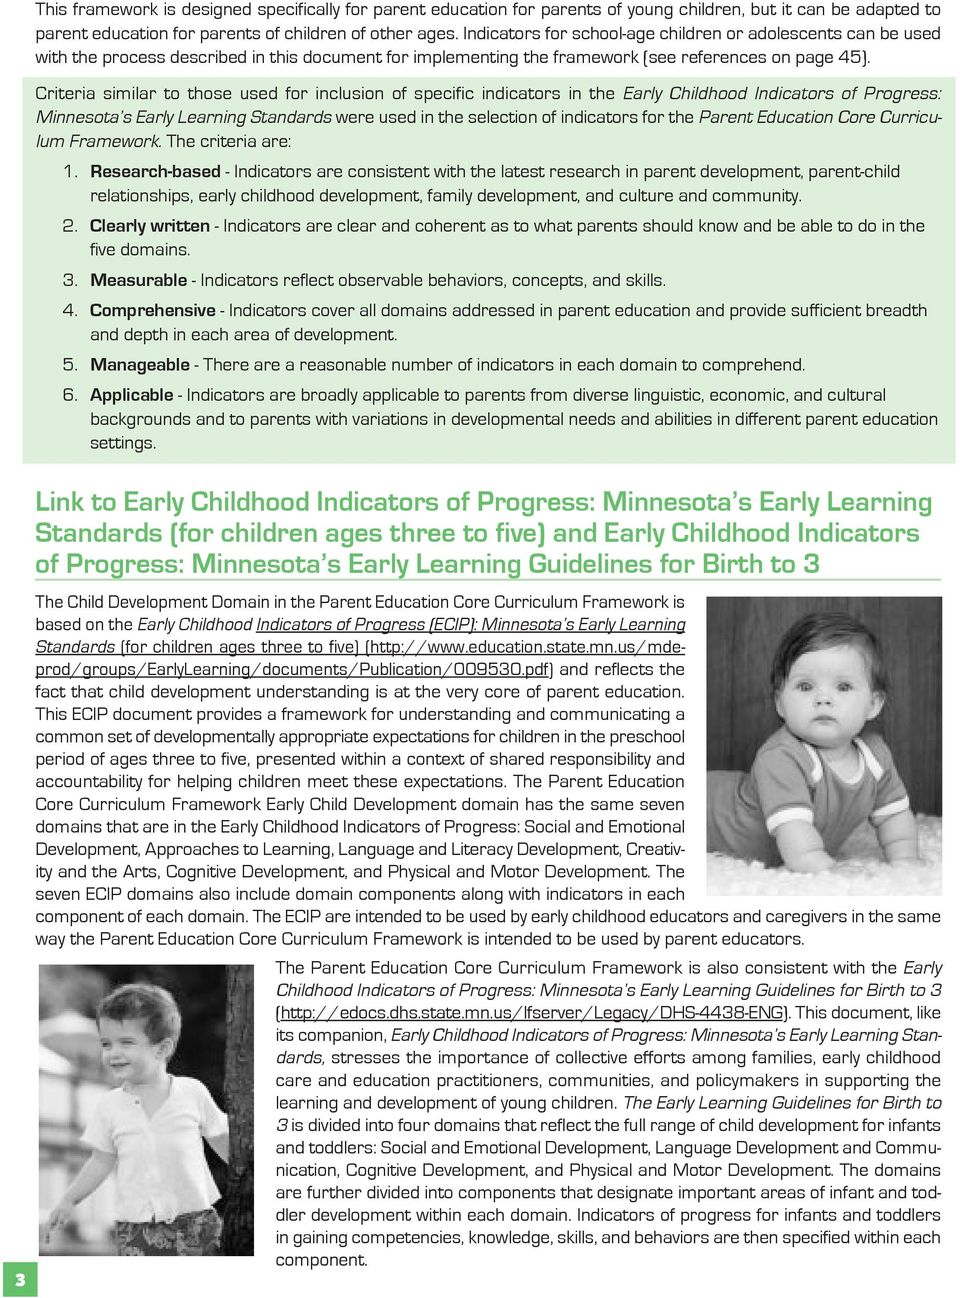 Criteria similar to those used for inclusion of specific indicators in the Early Childhood Indicators of Progress: Minnesota s Early Learning Standards were used in the selection of indicators for